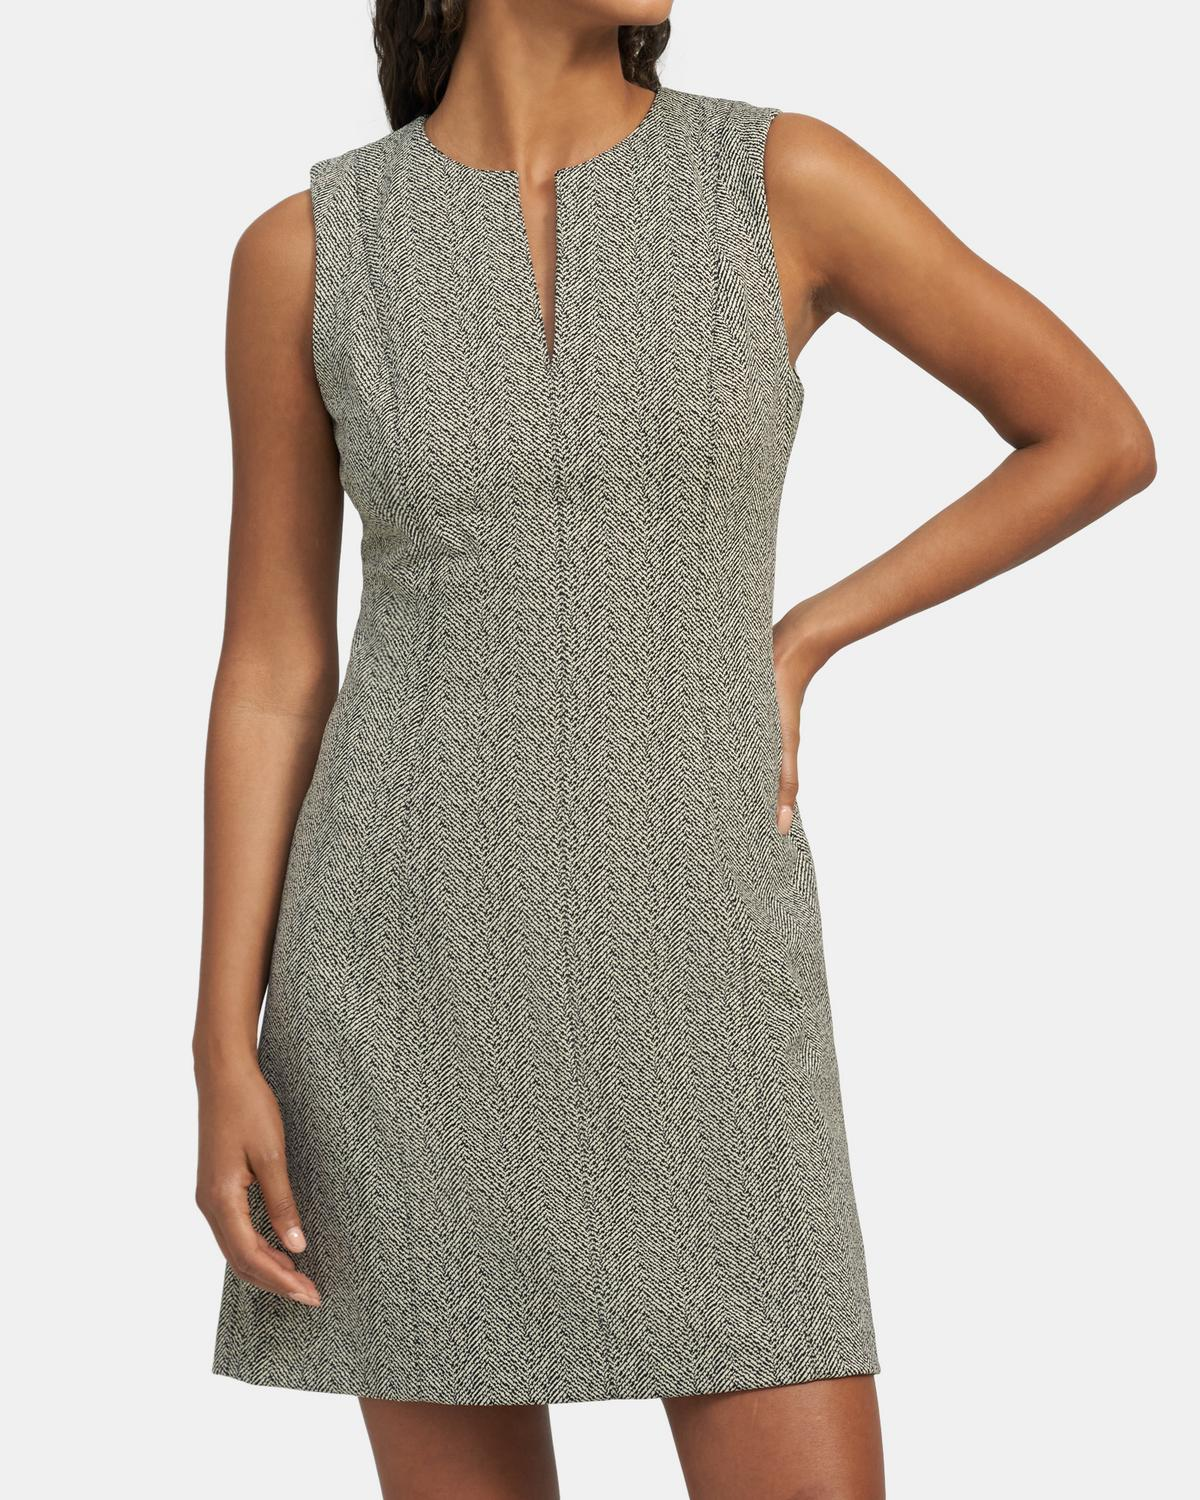 Seamed Volume Dress in Herringbone Knit